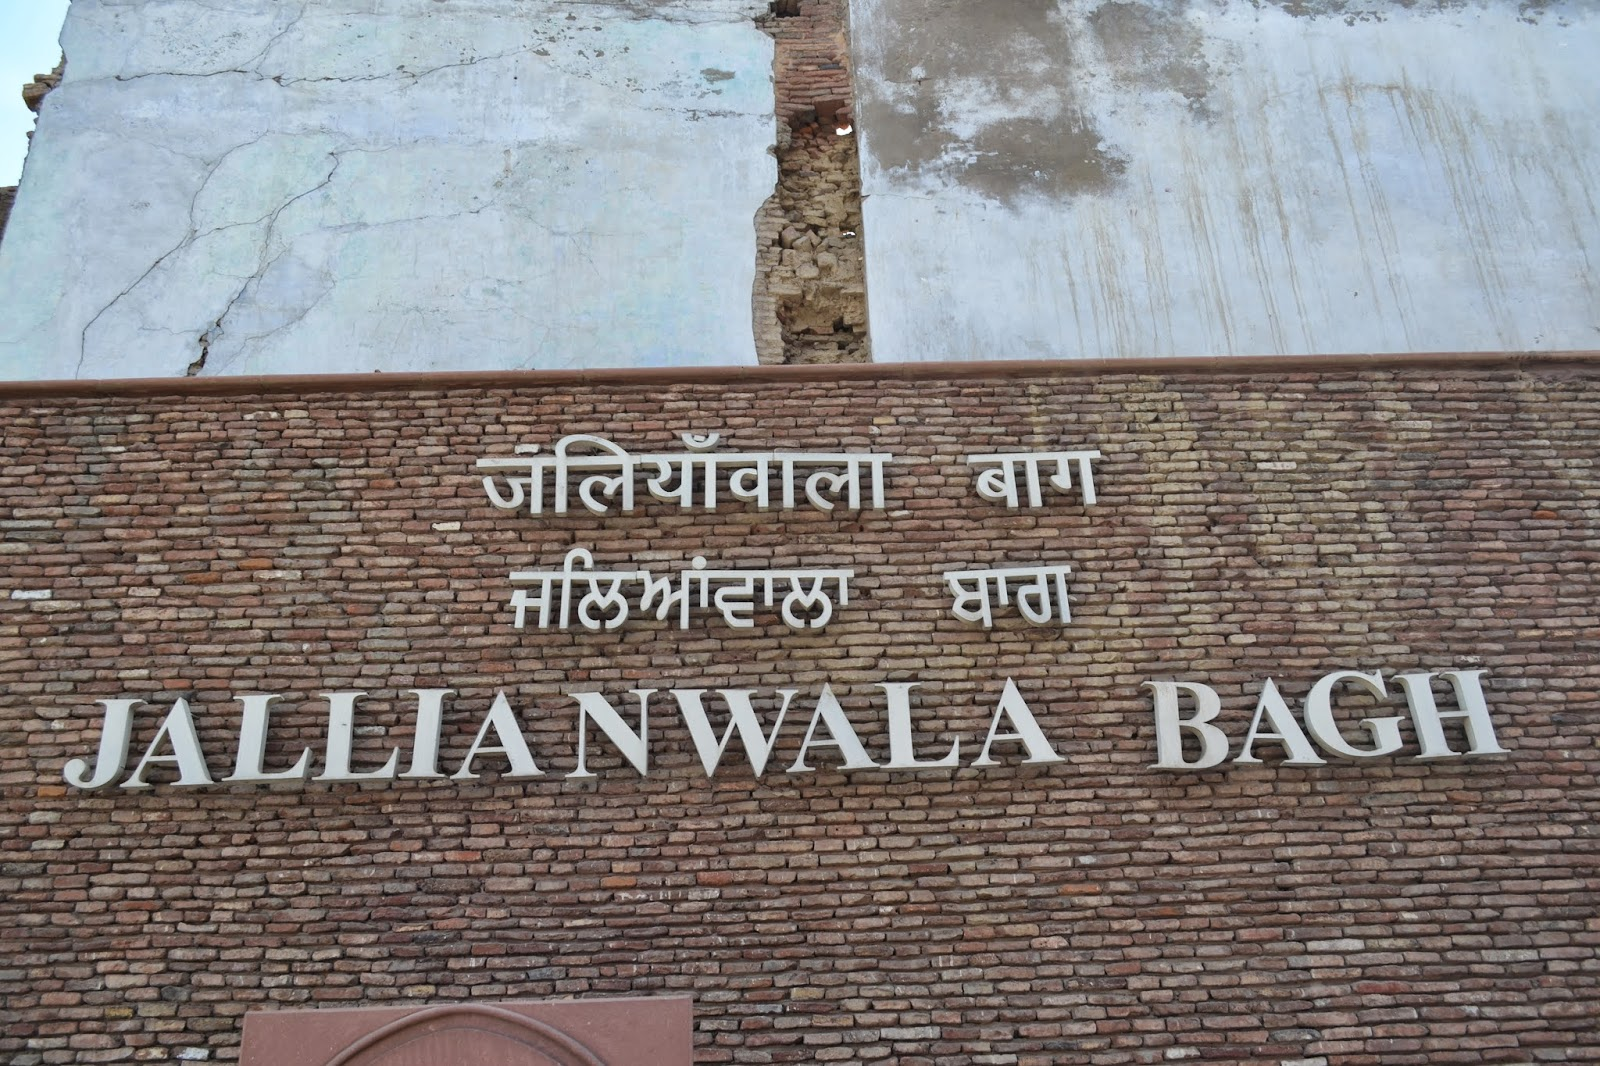 Entrance of Jallianwala Bagh